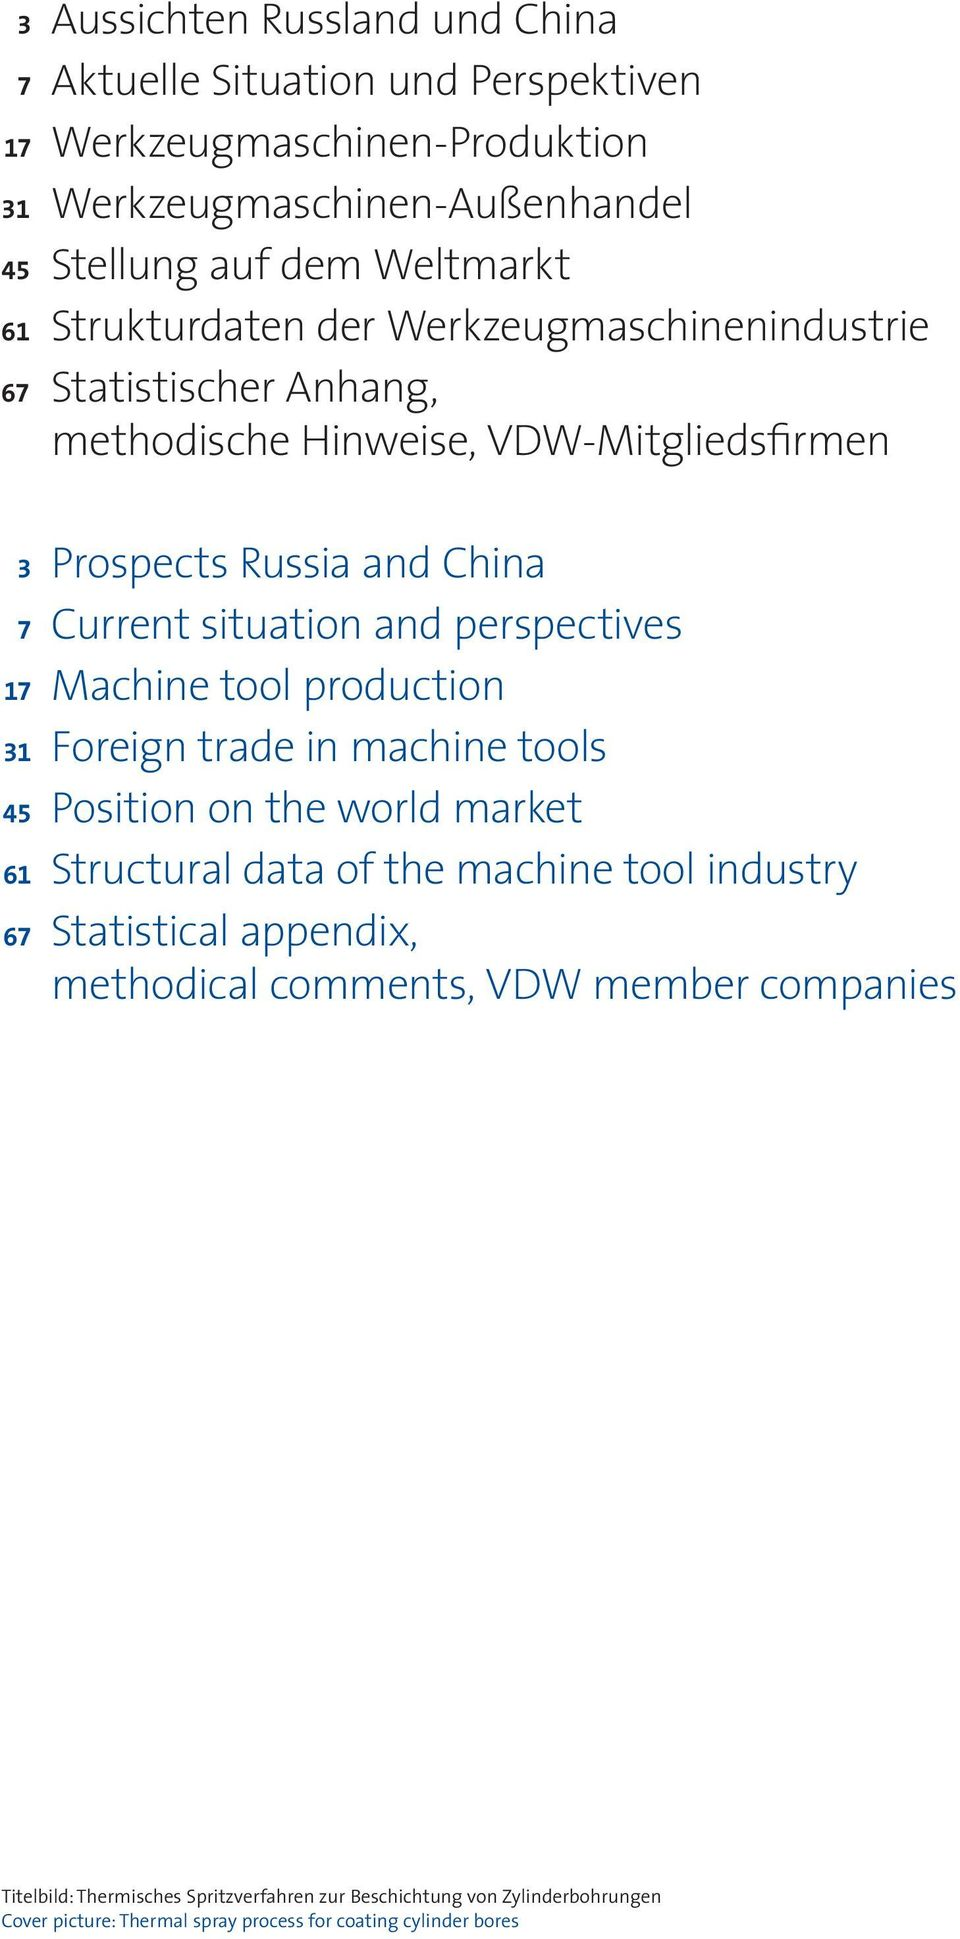 perspectives 17 Machine tool production 31 Foreign trade in machine tools 45 Position on the world market 61 Structural data of the machine tool industry 67 Statistical